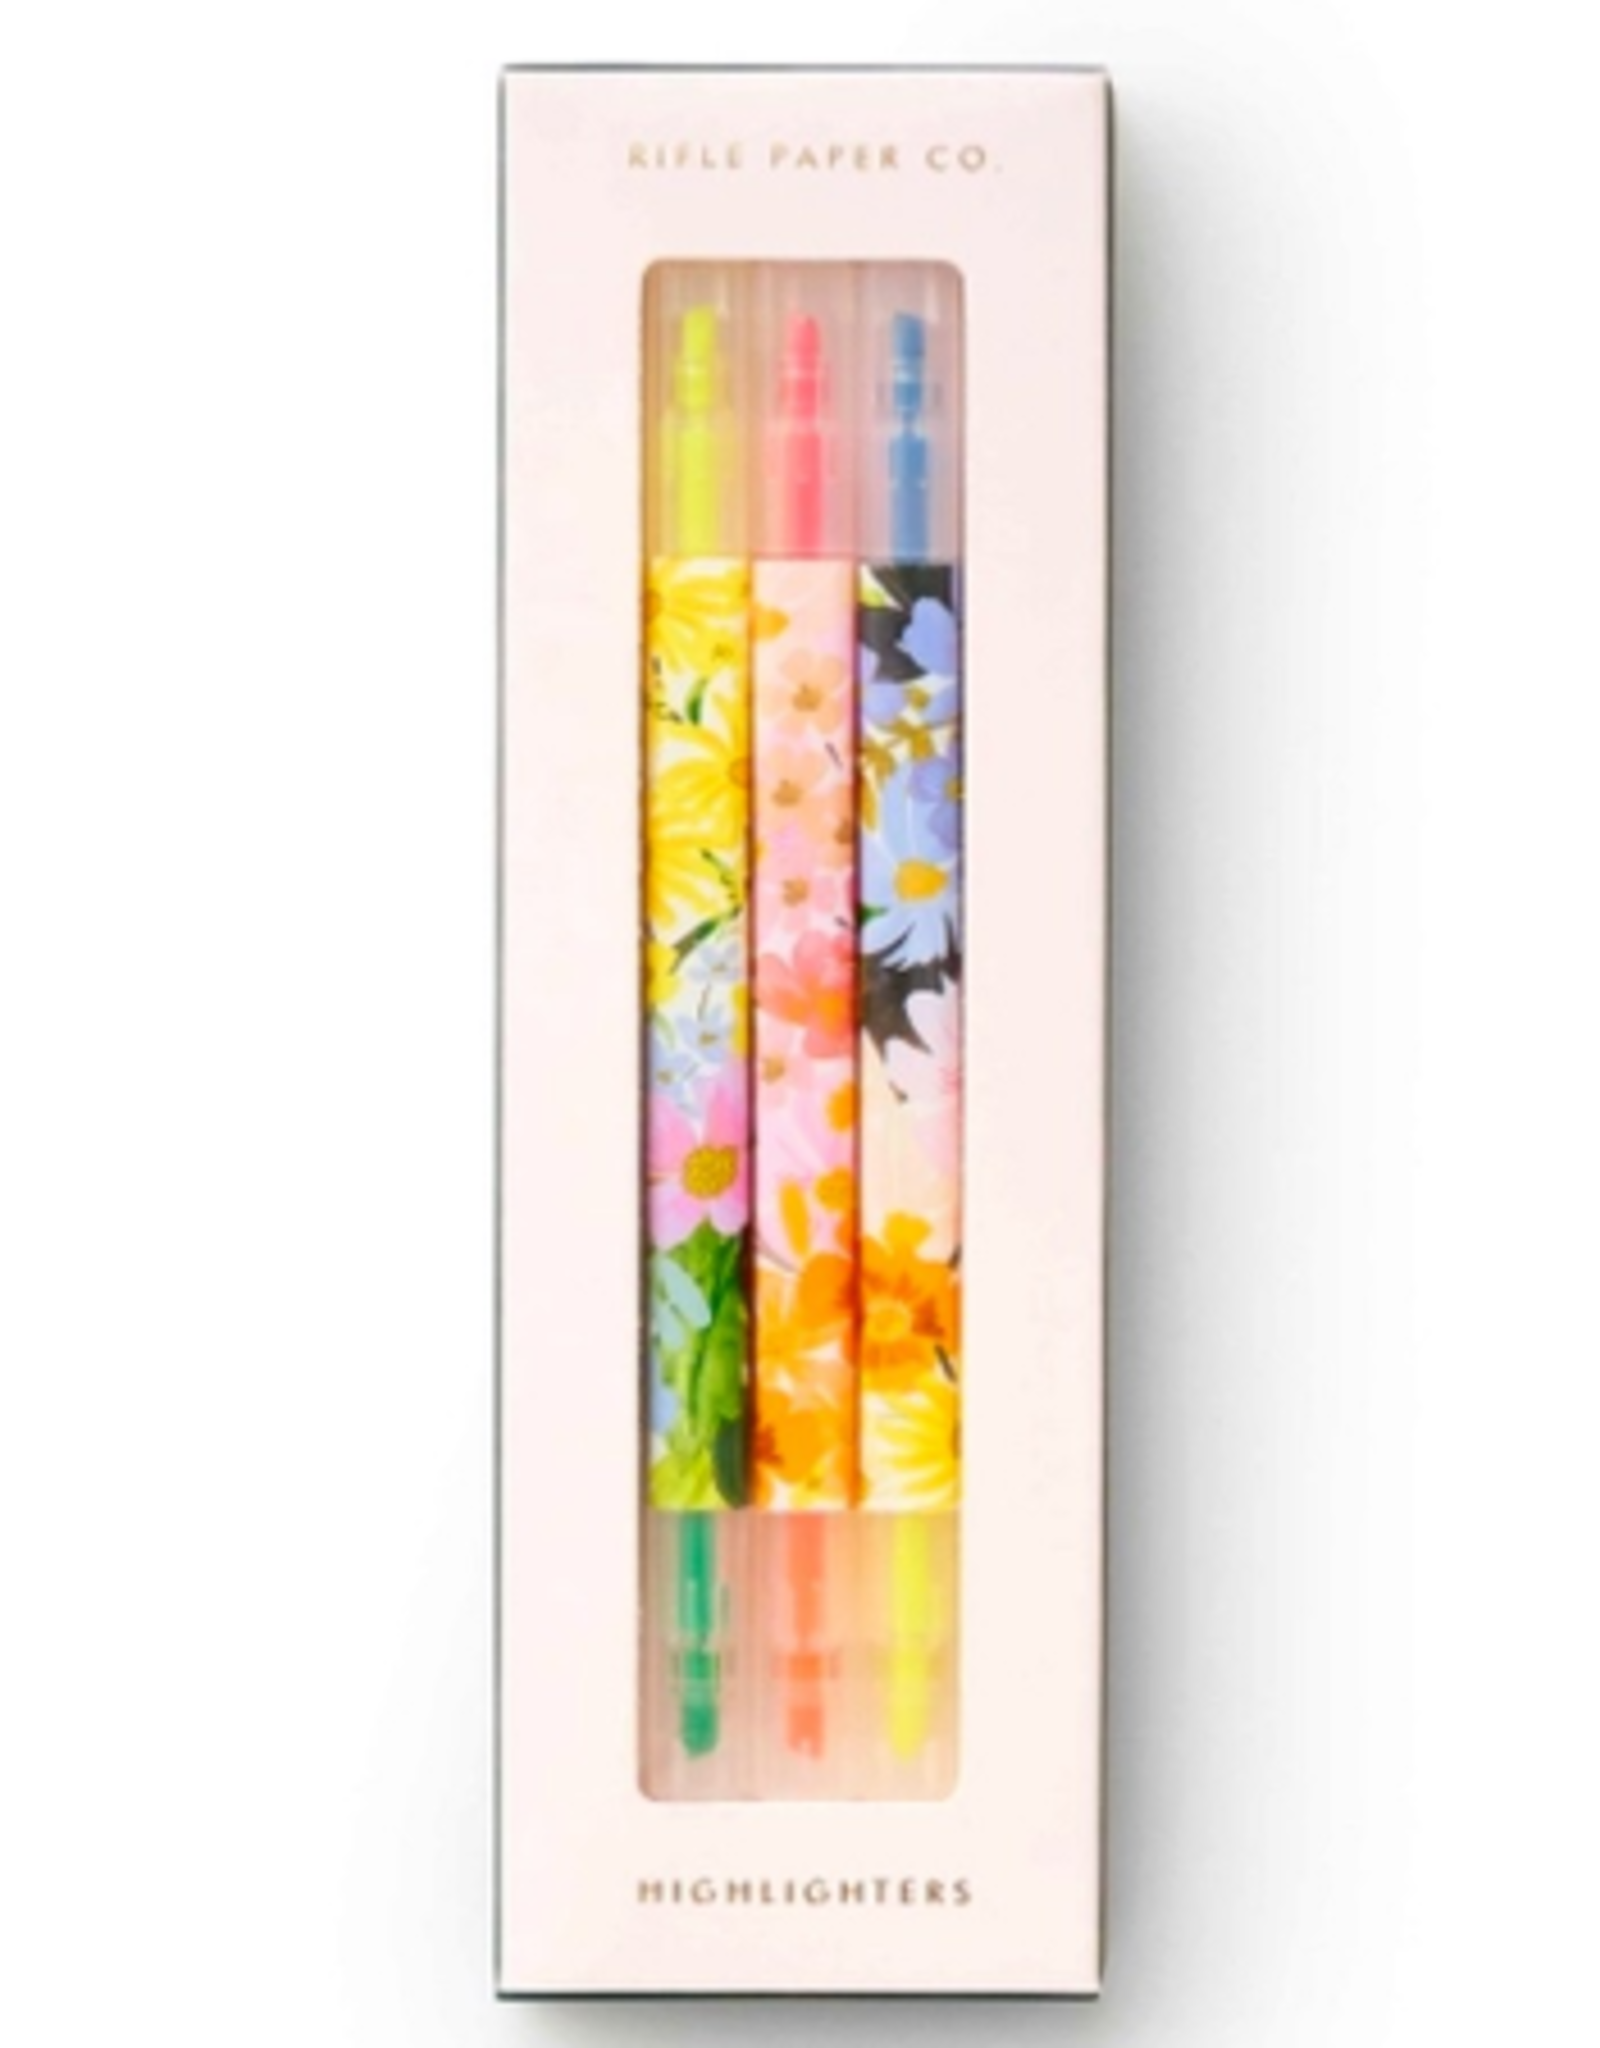 RIFLE PAPER COMPANY HIGHLIGHTER SET MARGUERITE